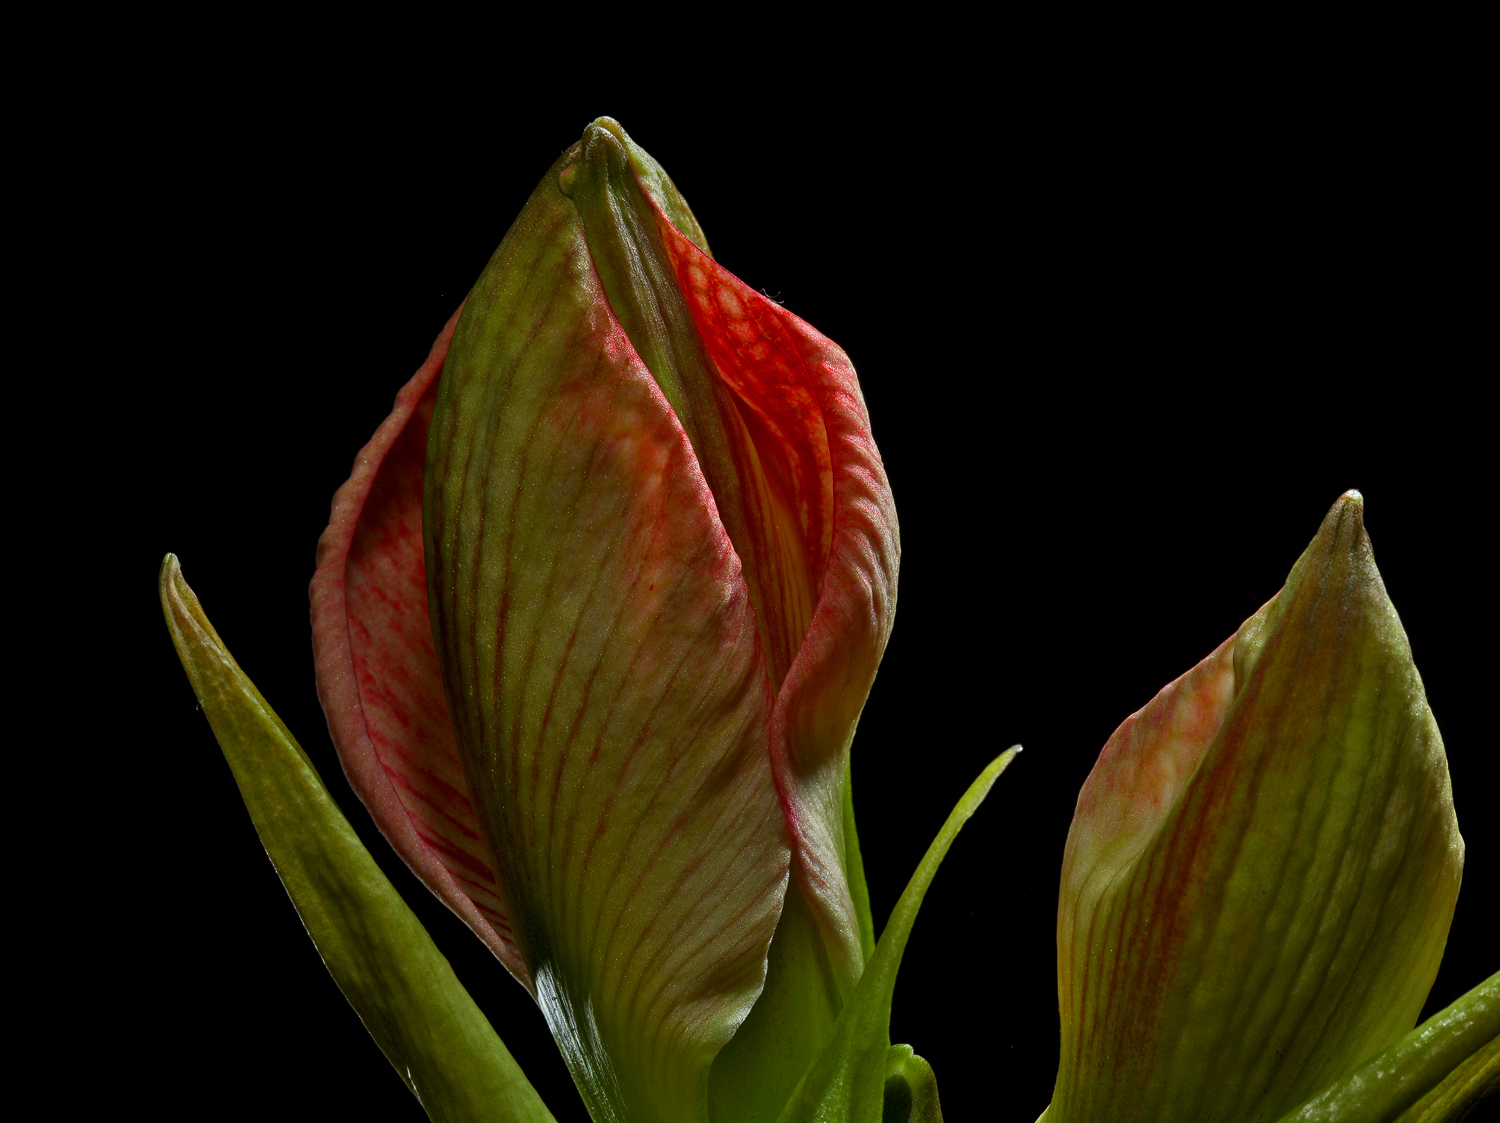 amaryllis the unfolding img aw author sava gregor gregory and verena